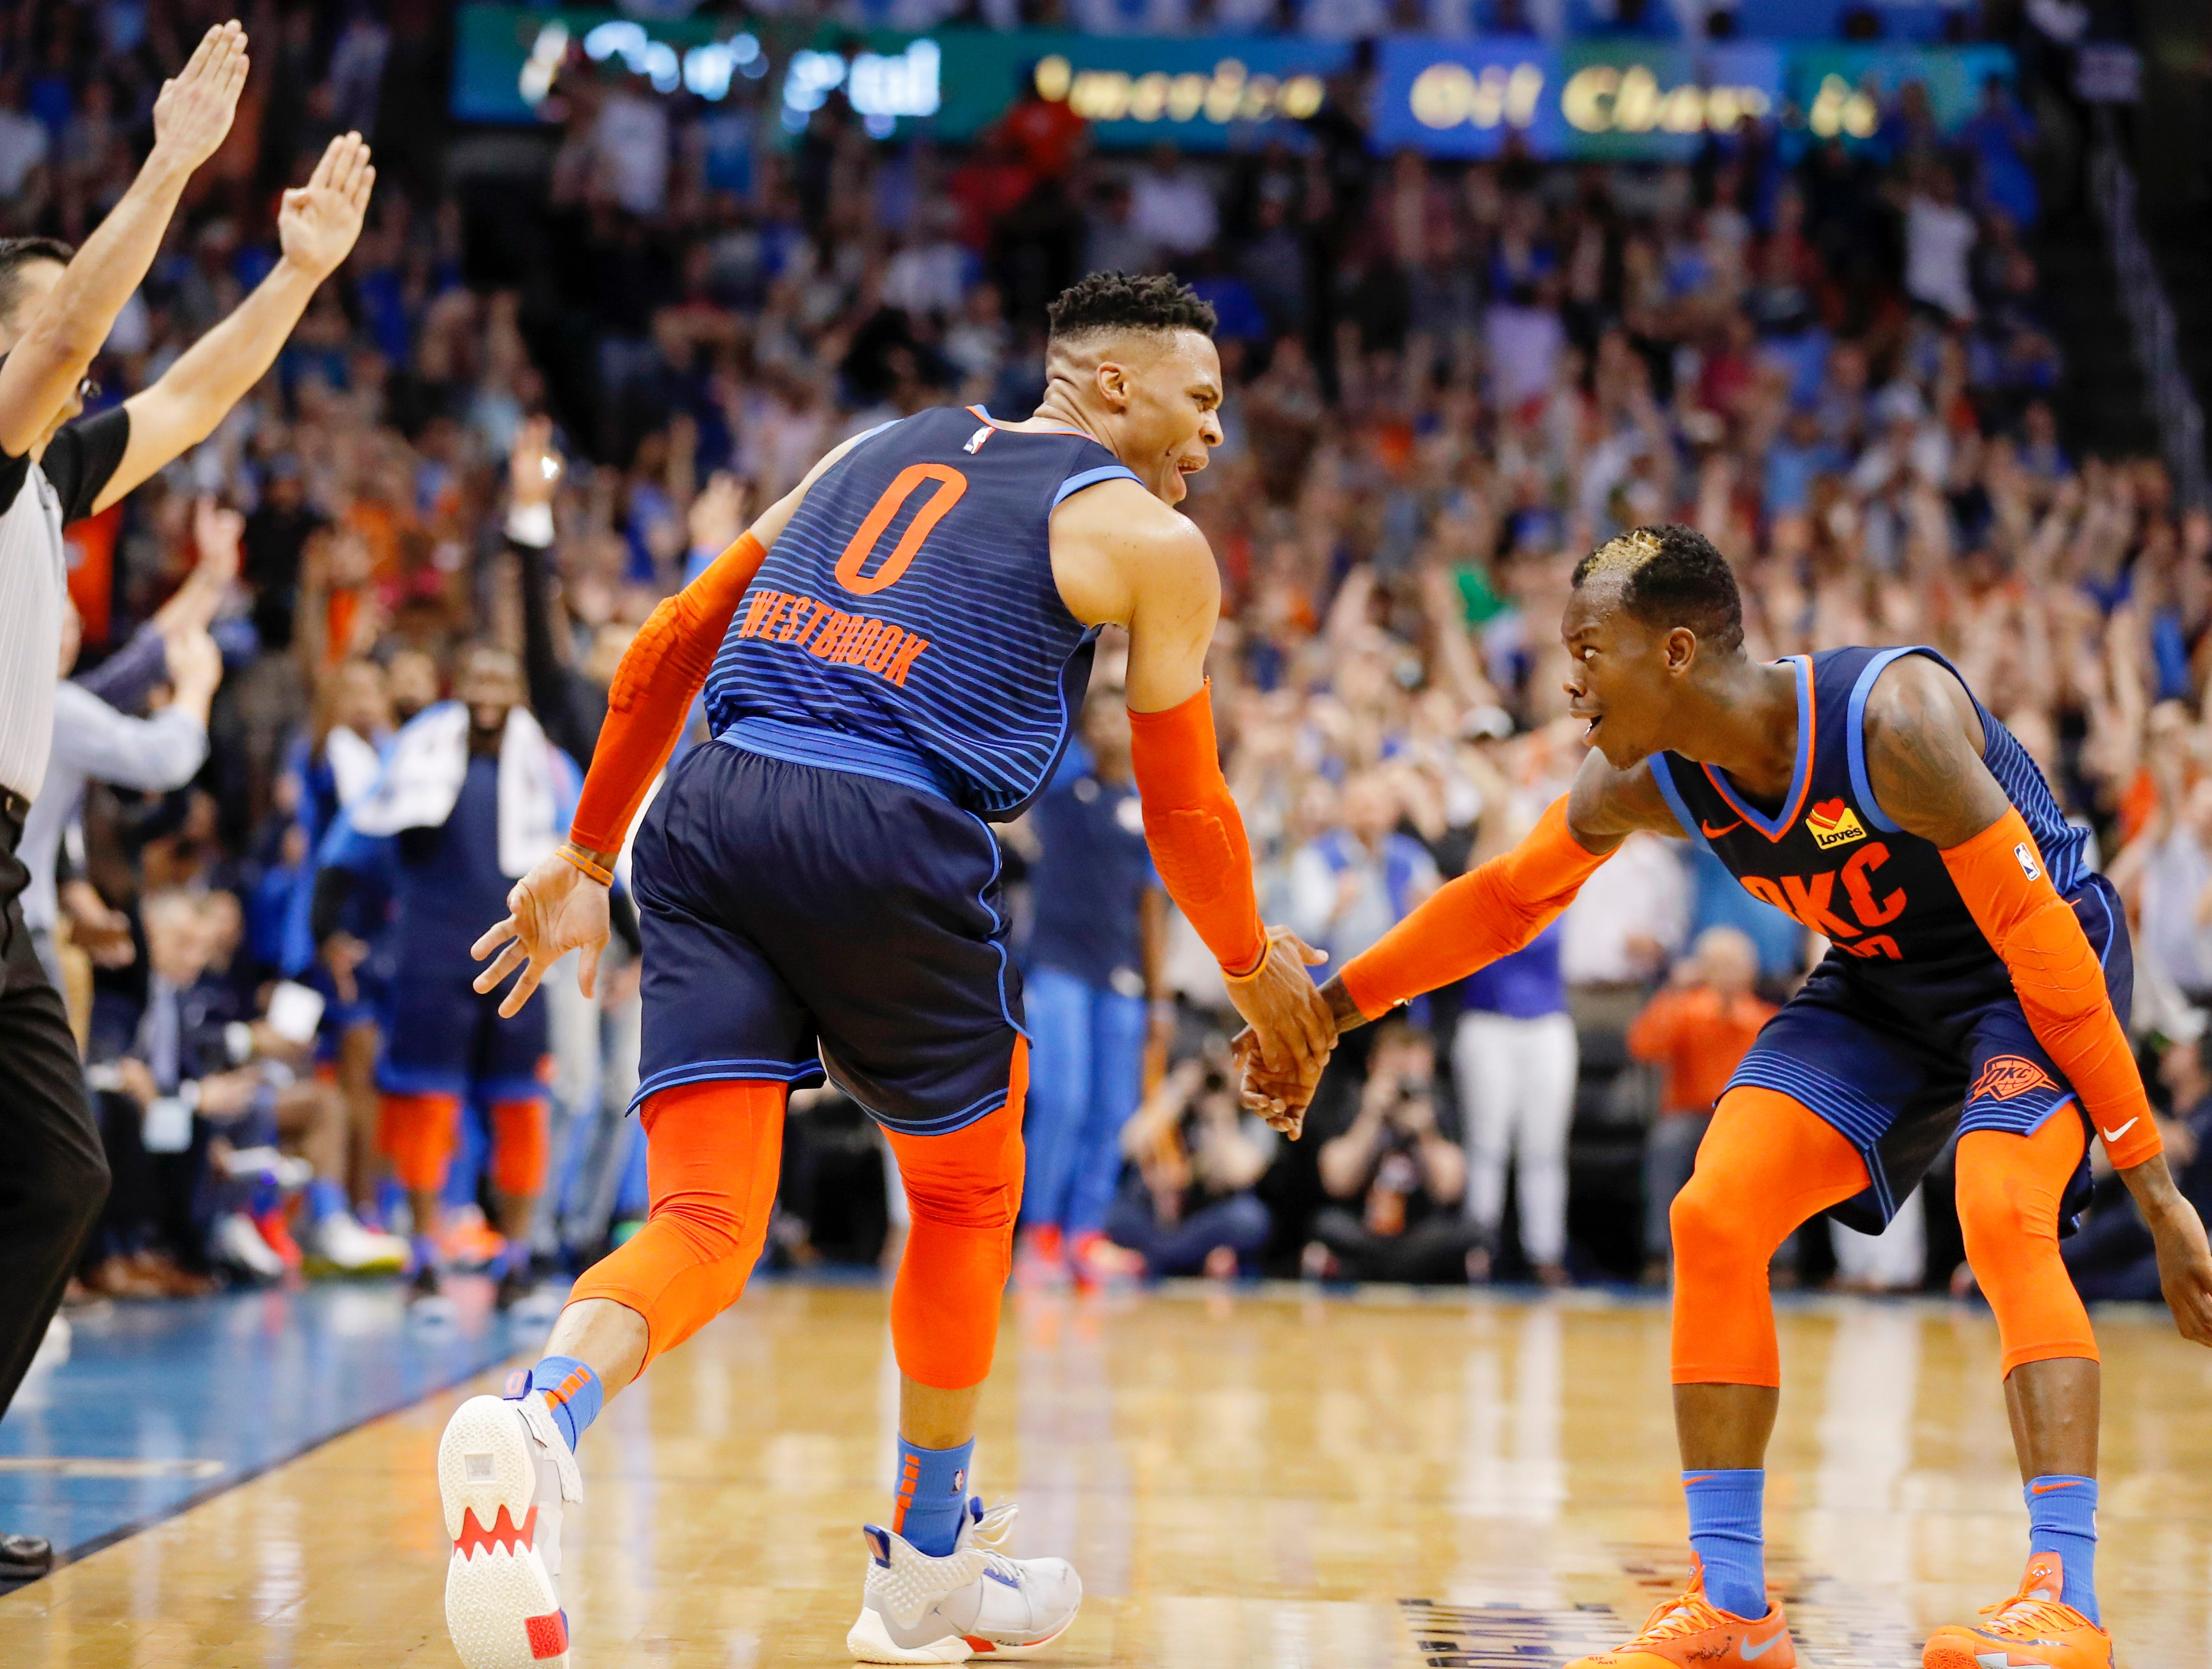 124. Russell Westbrook, Thunder (April 9): 29 points, 12 rebounds, 10 assists in 112-111 win over Rockets.